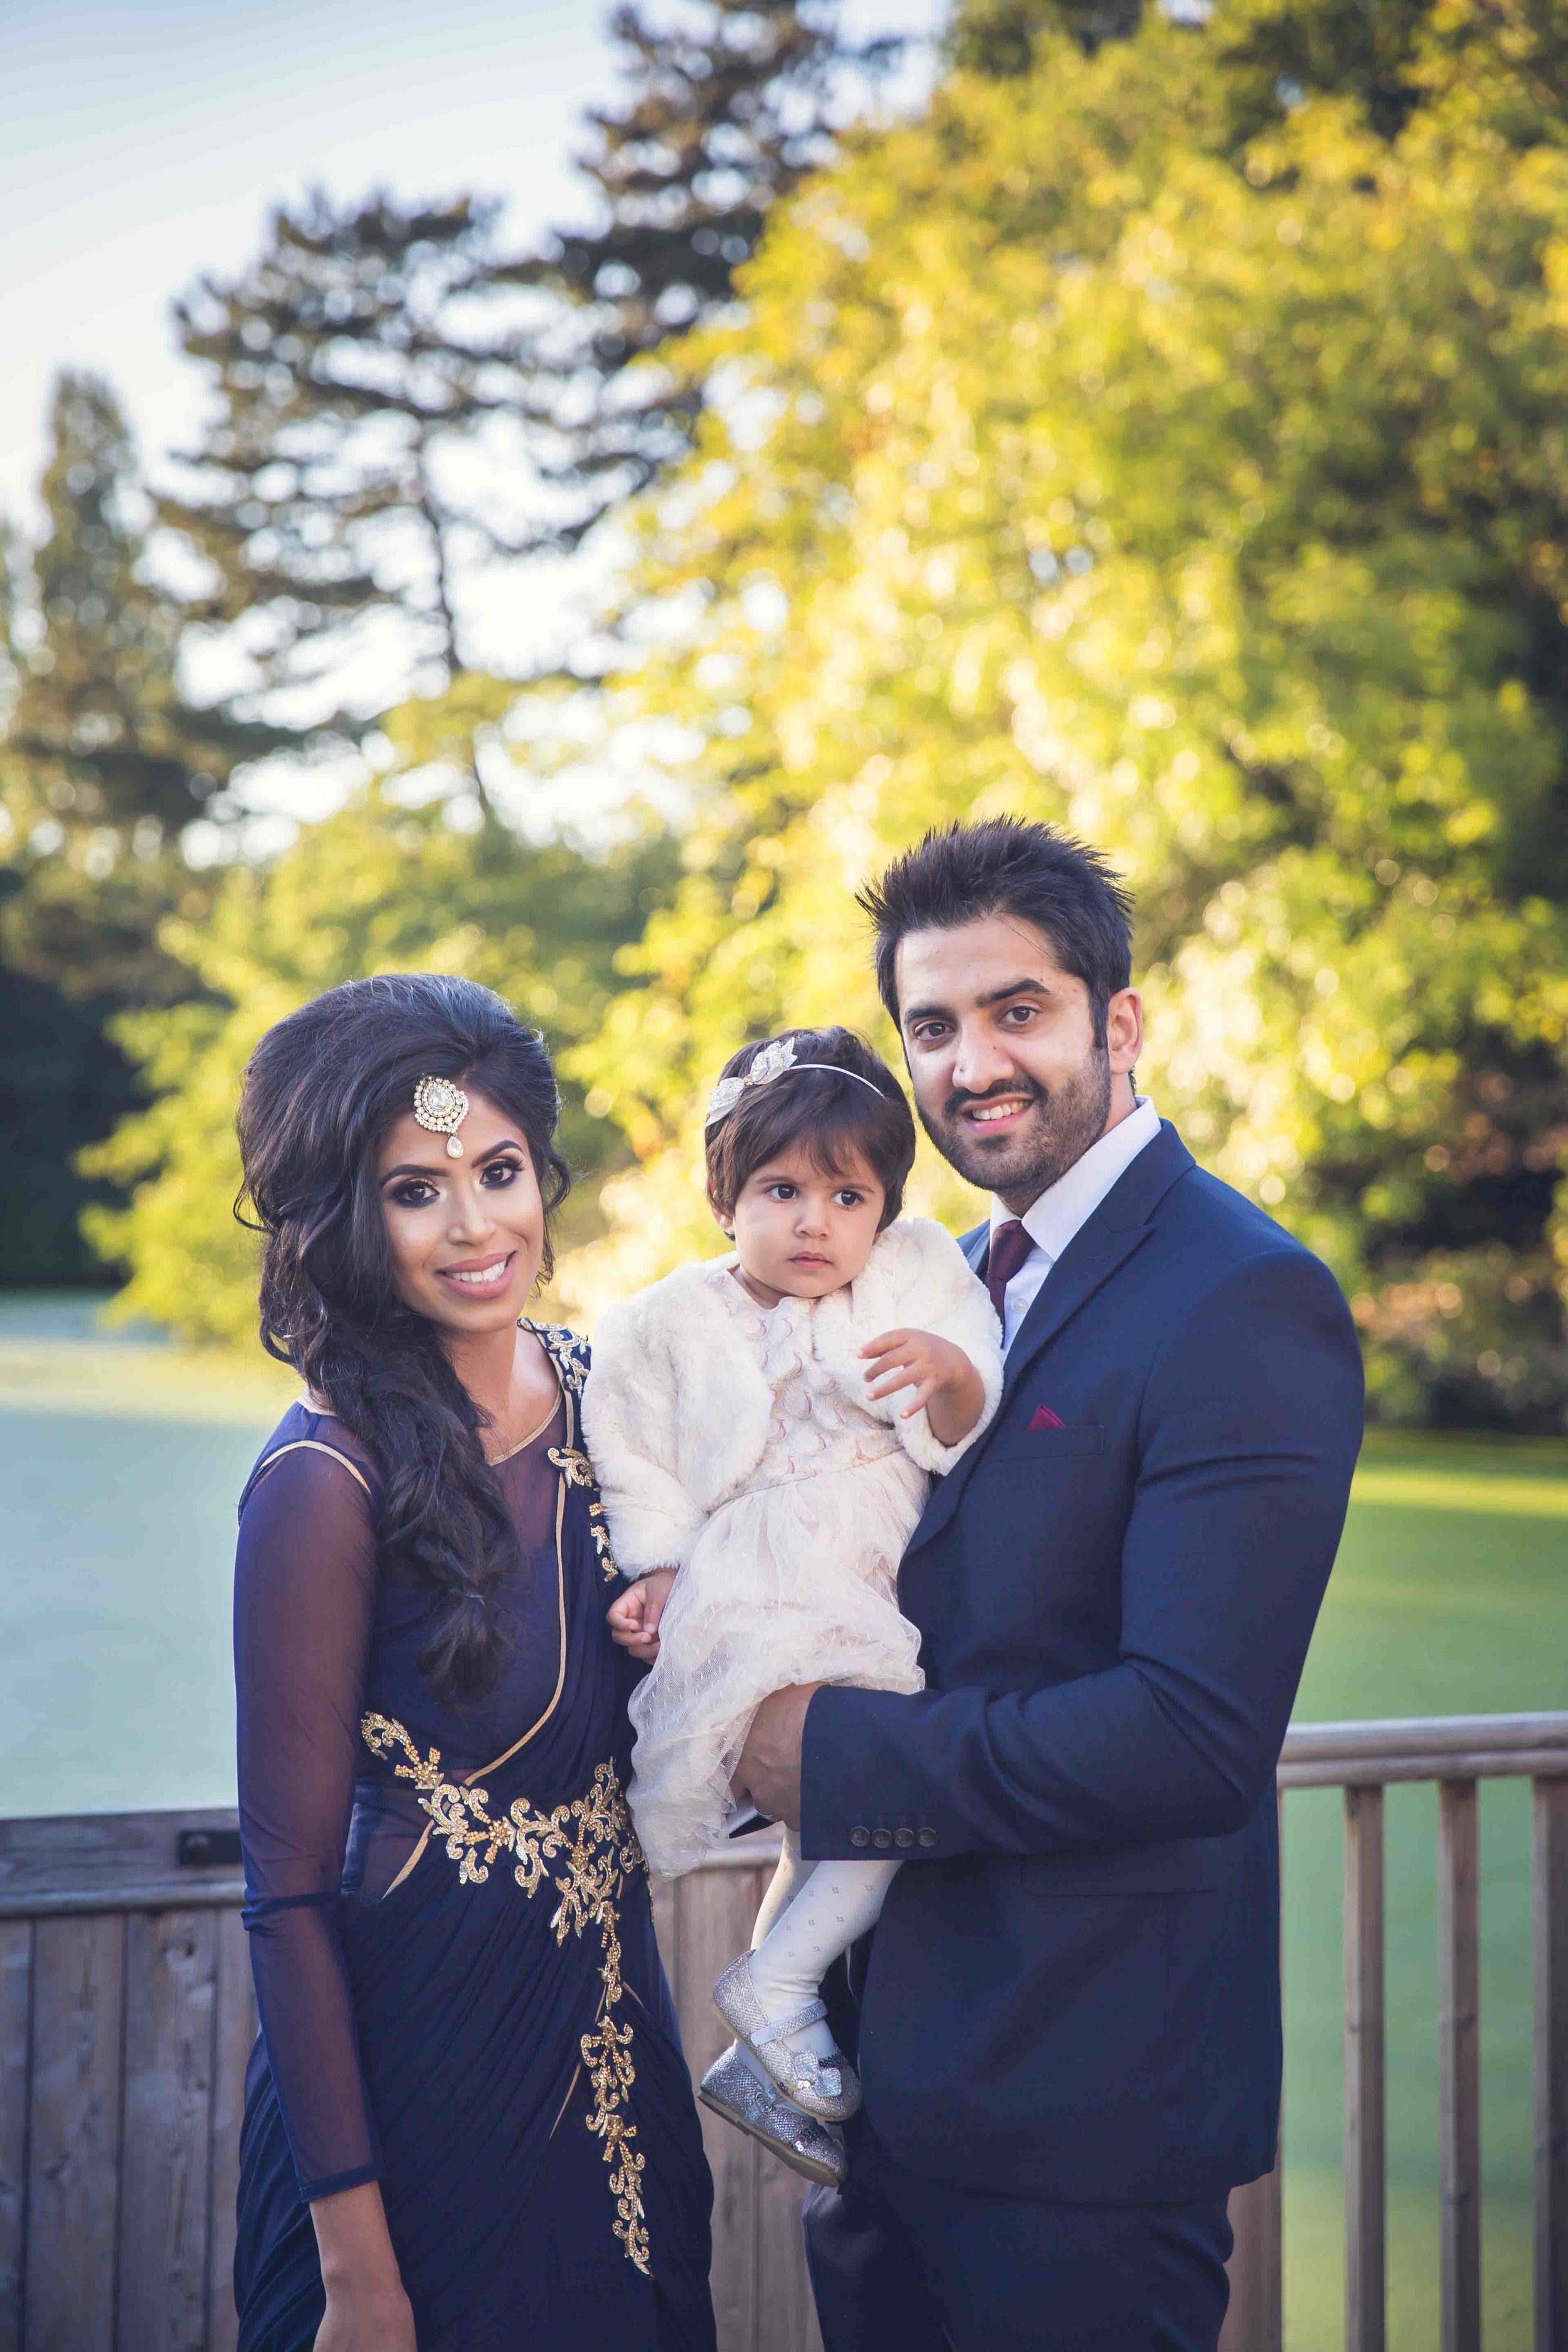 Asian Wedding Photographer Opu Sultan Photography Lyme Park Scotland Edinburgh Glasgow London Manchester Liverpool Birmingham Wedding Photos prewed shoot Azman & Saira Blog-101.jpg